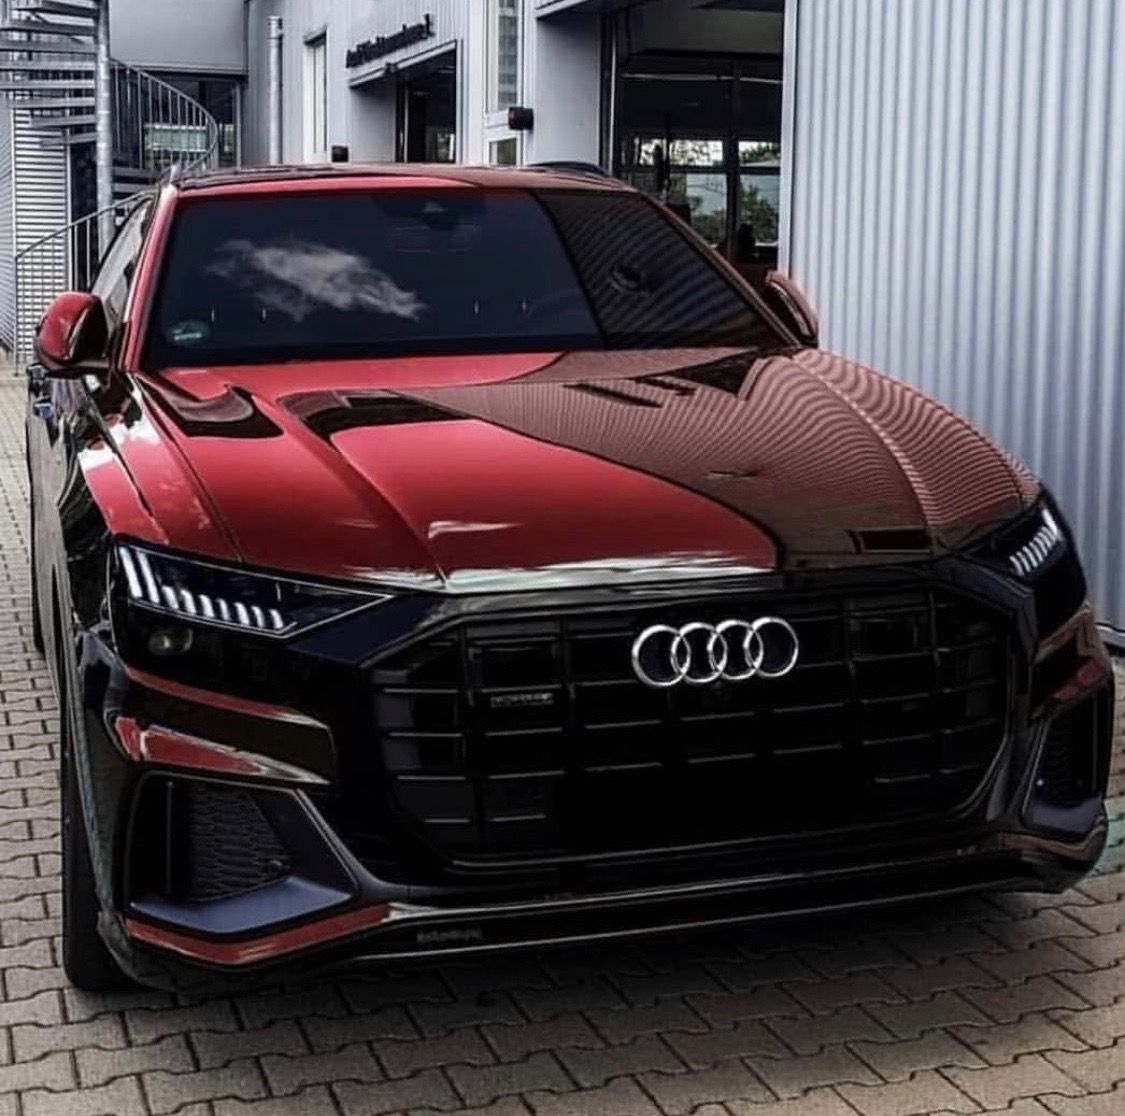 2019 Audi Q8 The Red Beast With Images Luxury Cars Audi Dream